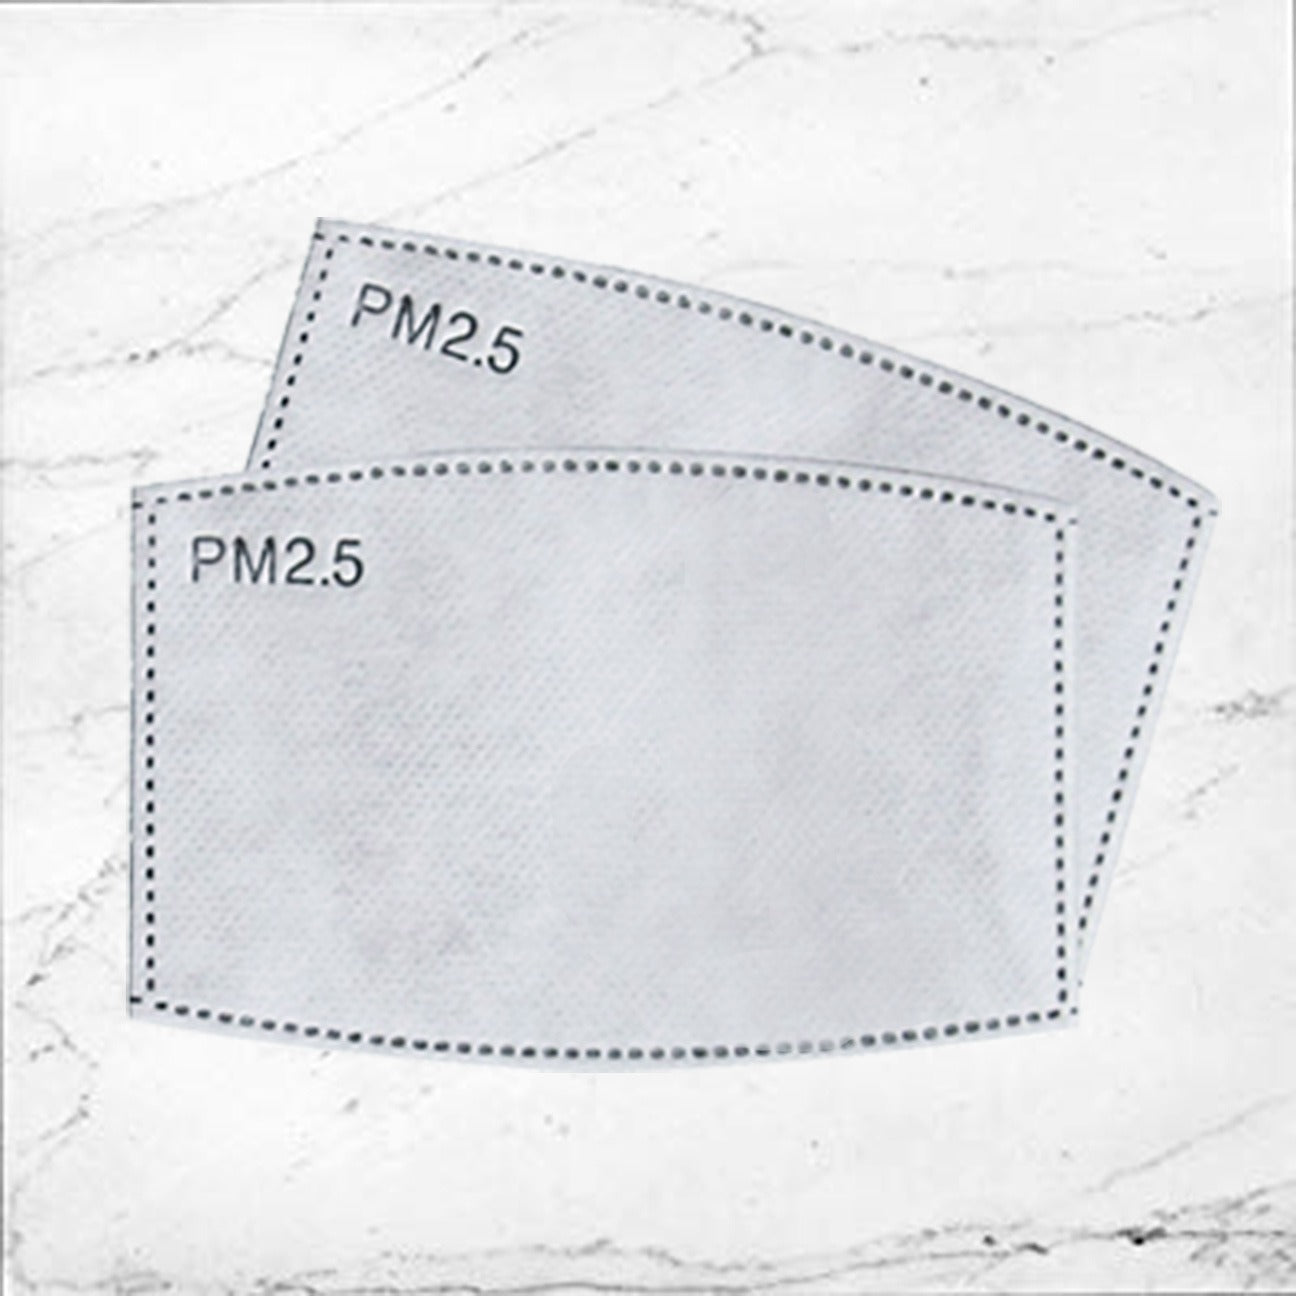 PM 2.5 5-Layer filter insert for fabric masks